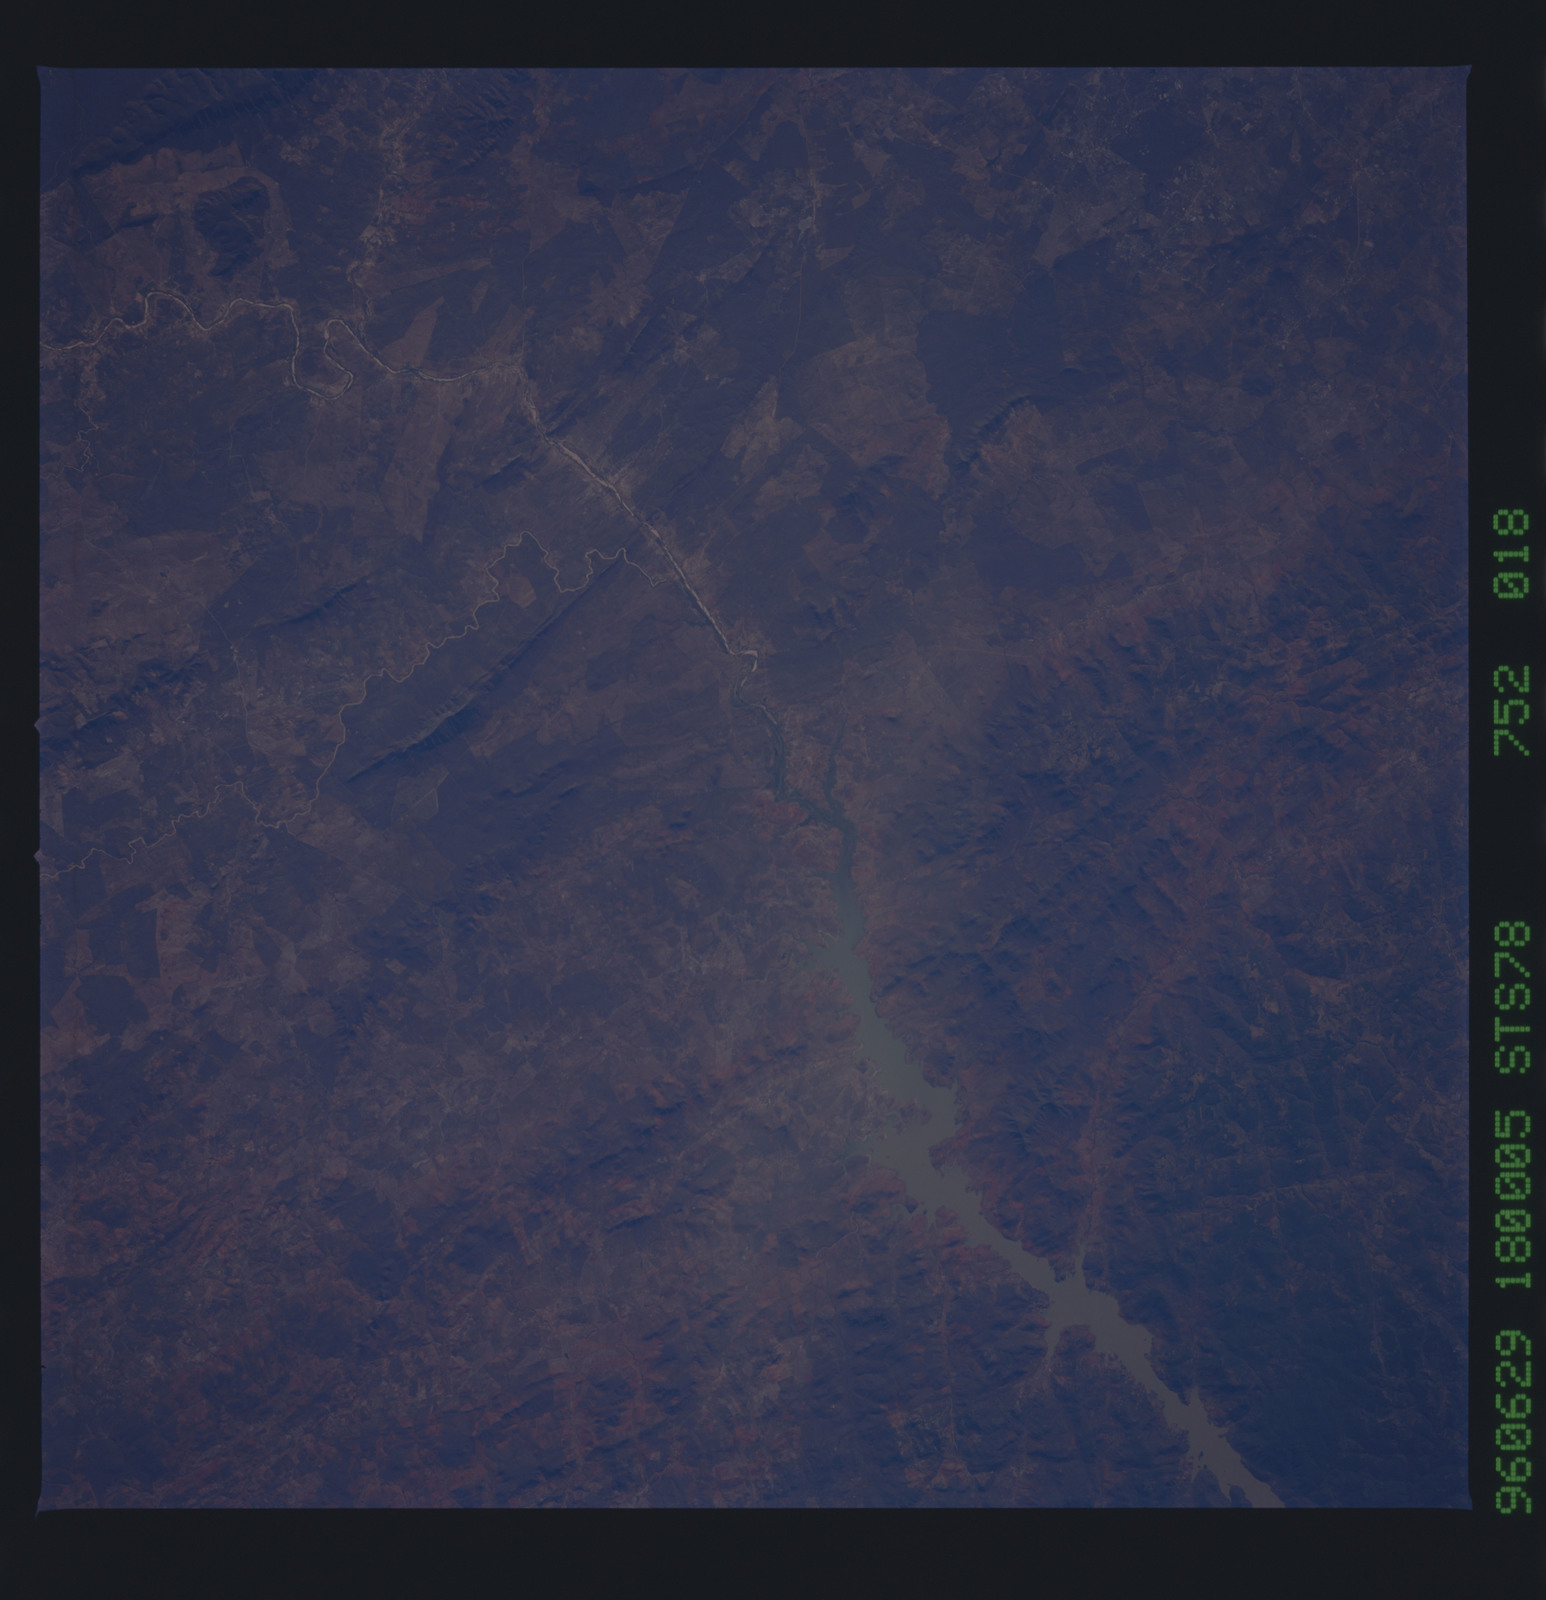 STS078-752-018 - STS-078 - Earth observations taken from Space Shuttle Columbia during STS-78 mission